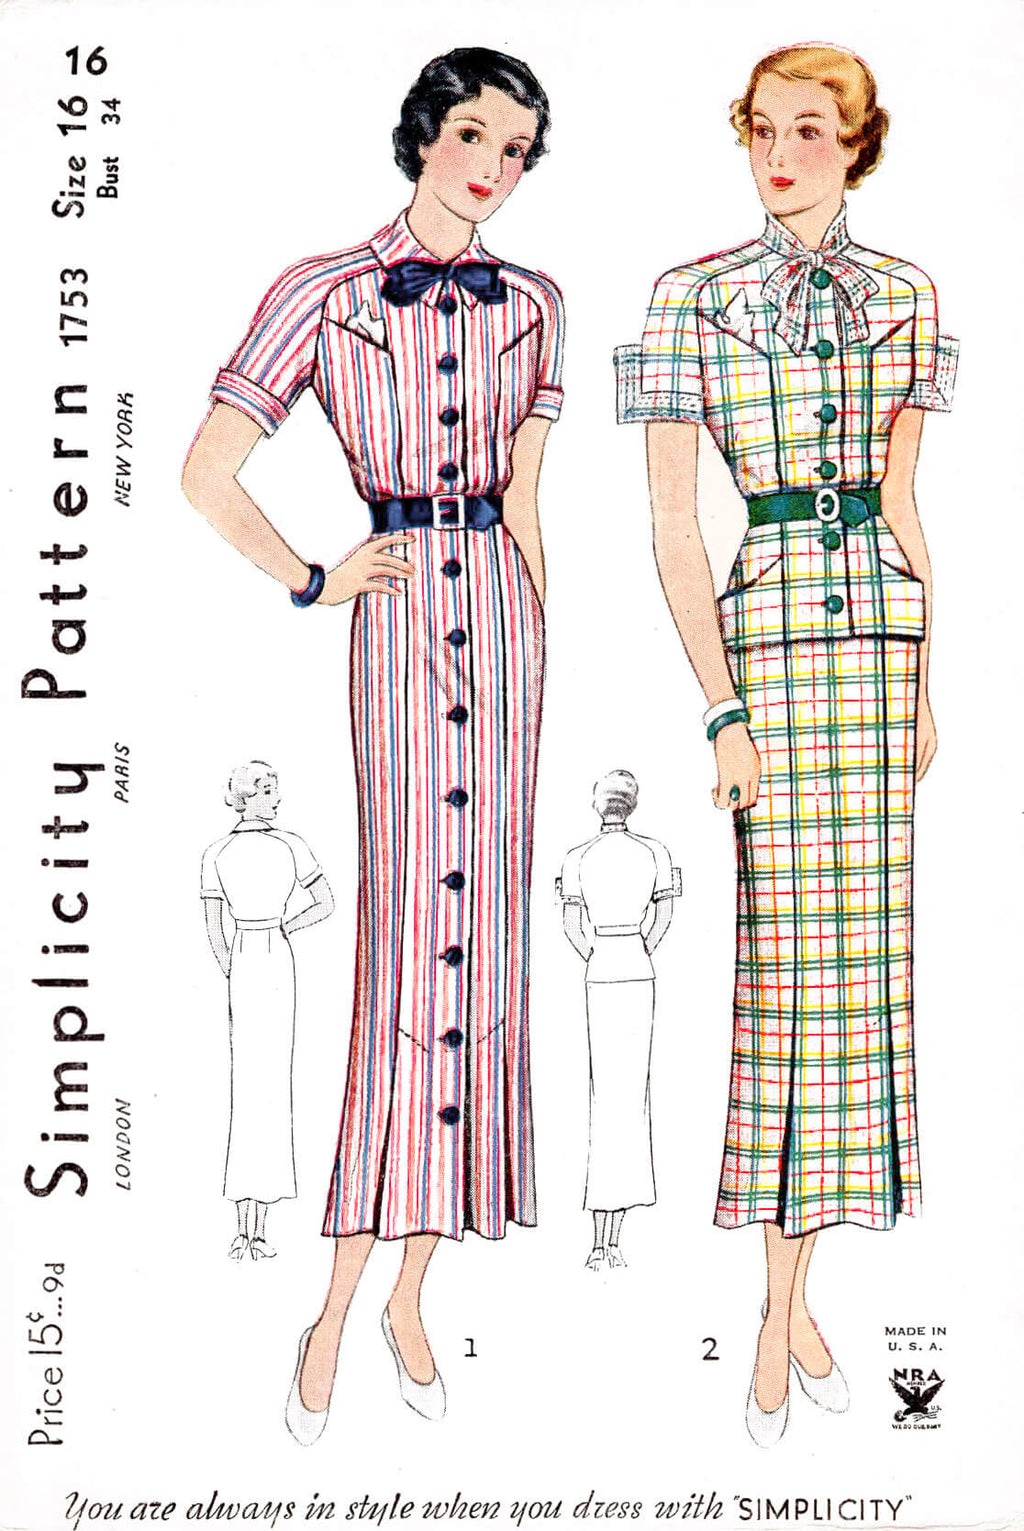 1930s Simplicity 1753 day dress peplum blouse pencil skirt vintage sewing pattern reproduction